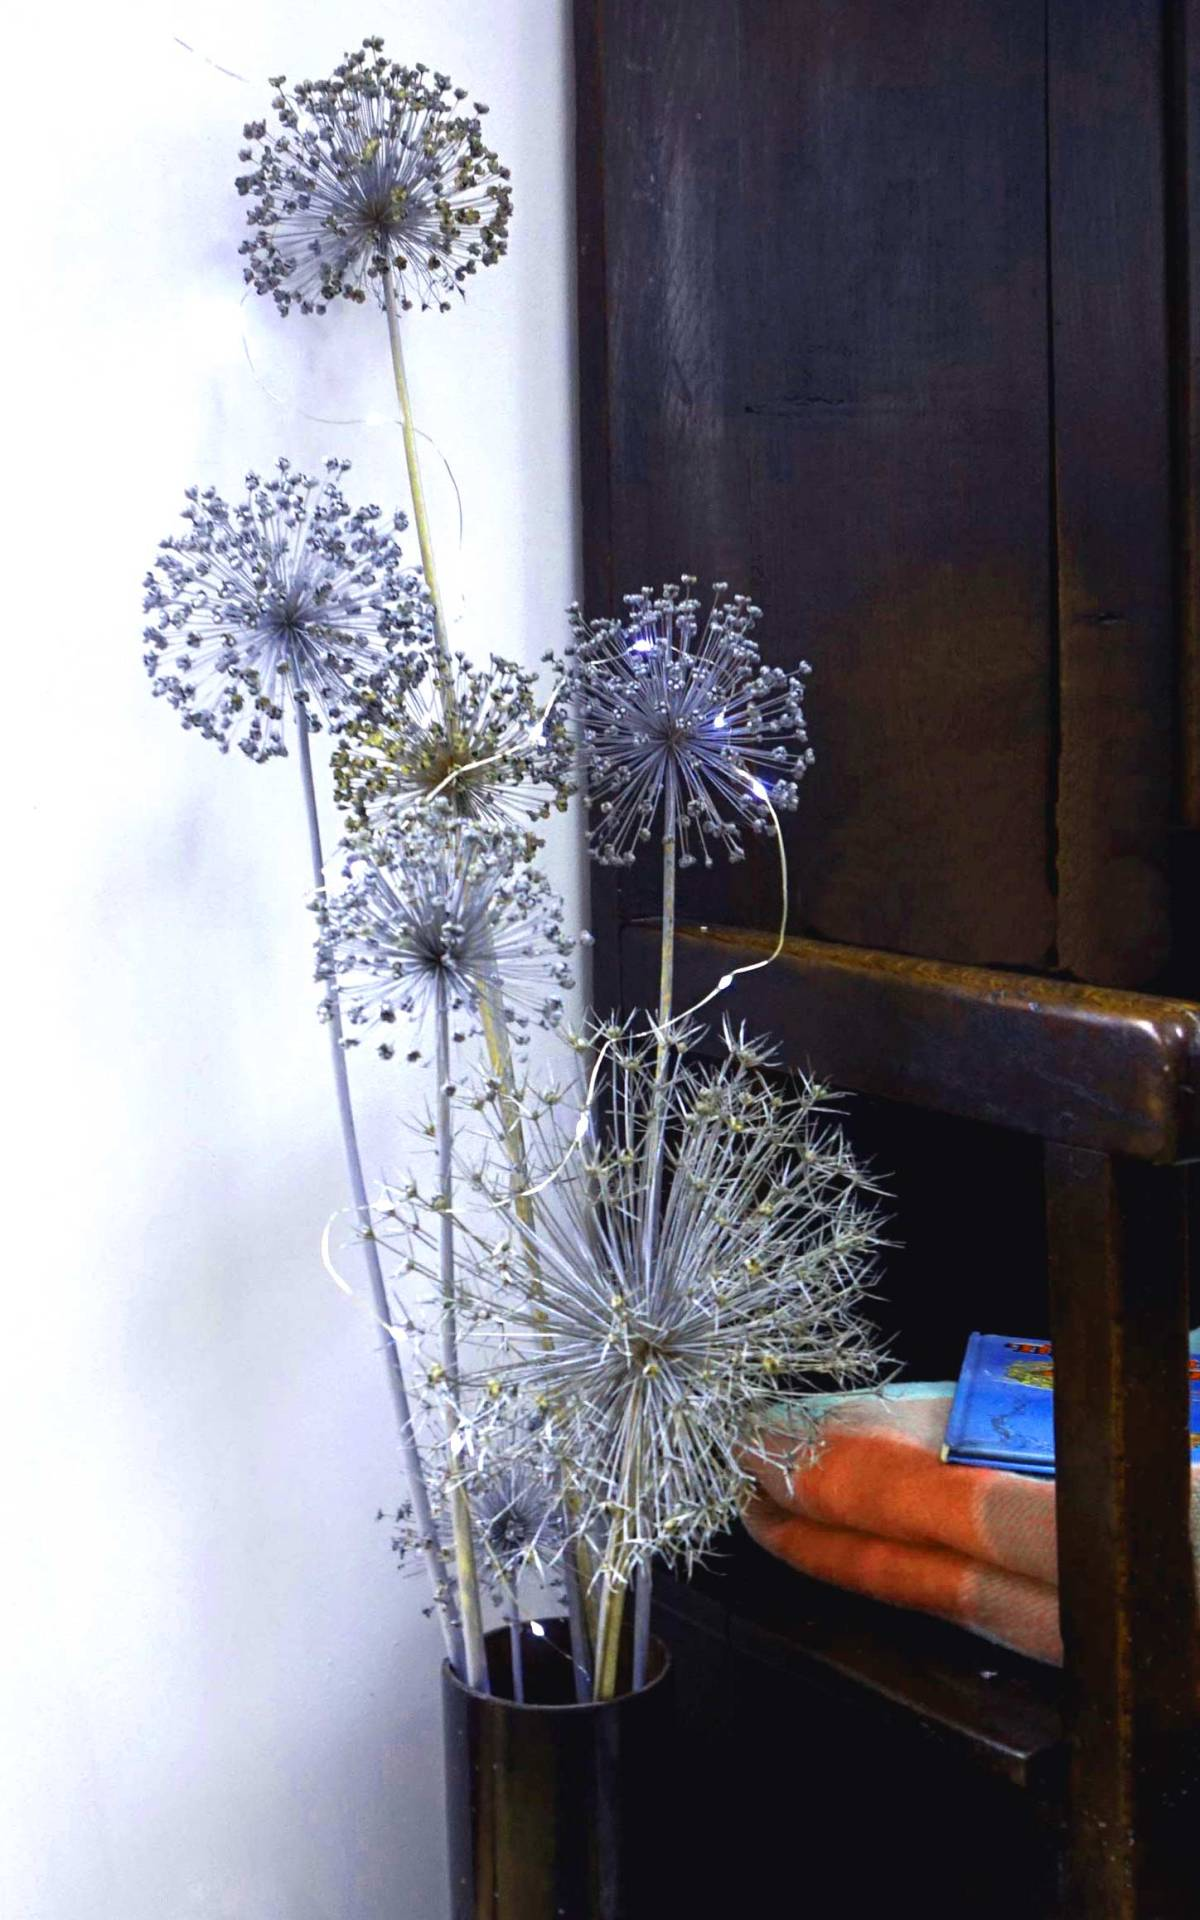 Aliums are great for a structural Christmas decoration. I used this vintage stove flue pipe to show them off in. Hung and dried when they went to seed in the autumn, I sprayed them early in December with silver and a little gold paint. Their natural shapes and formations speak of sparklers, fireworks, snowflakes.Add some tiny lights and you can't go wrong. #DecemberPlantique#PlantiqueDecember20#ChristmasDecorations#PlantswigsandfoliageforChristmasdecorations#AliumsforChristmasDecorations#SprayedanddriedAliums